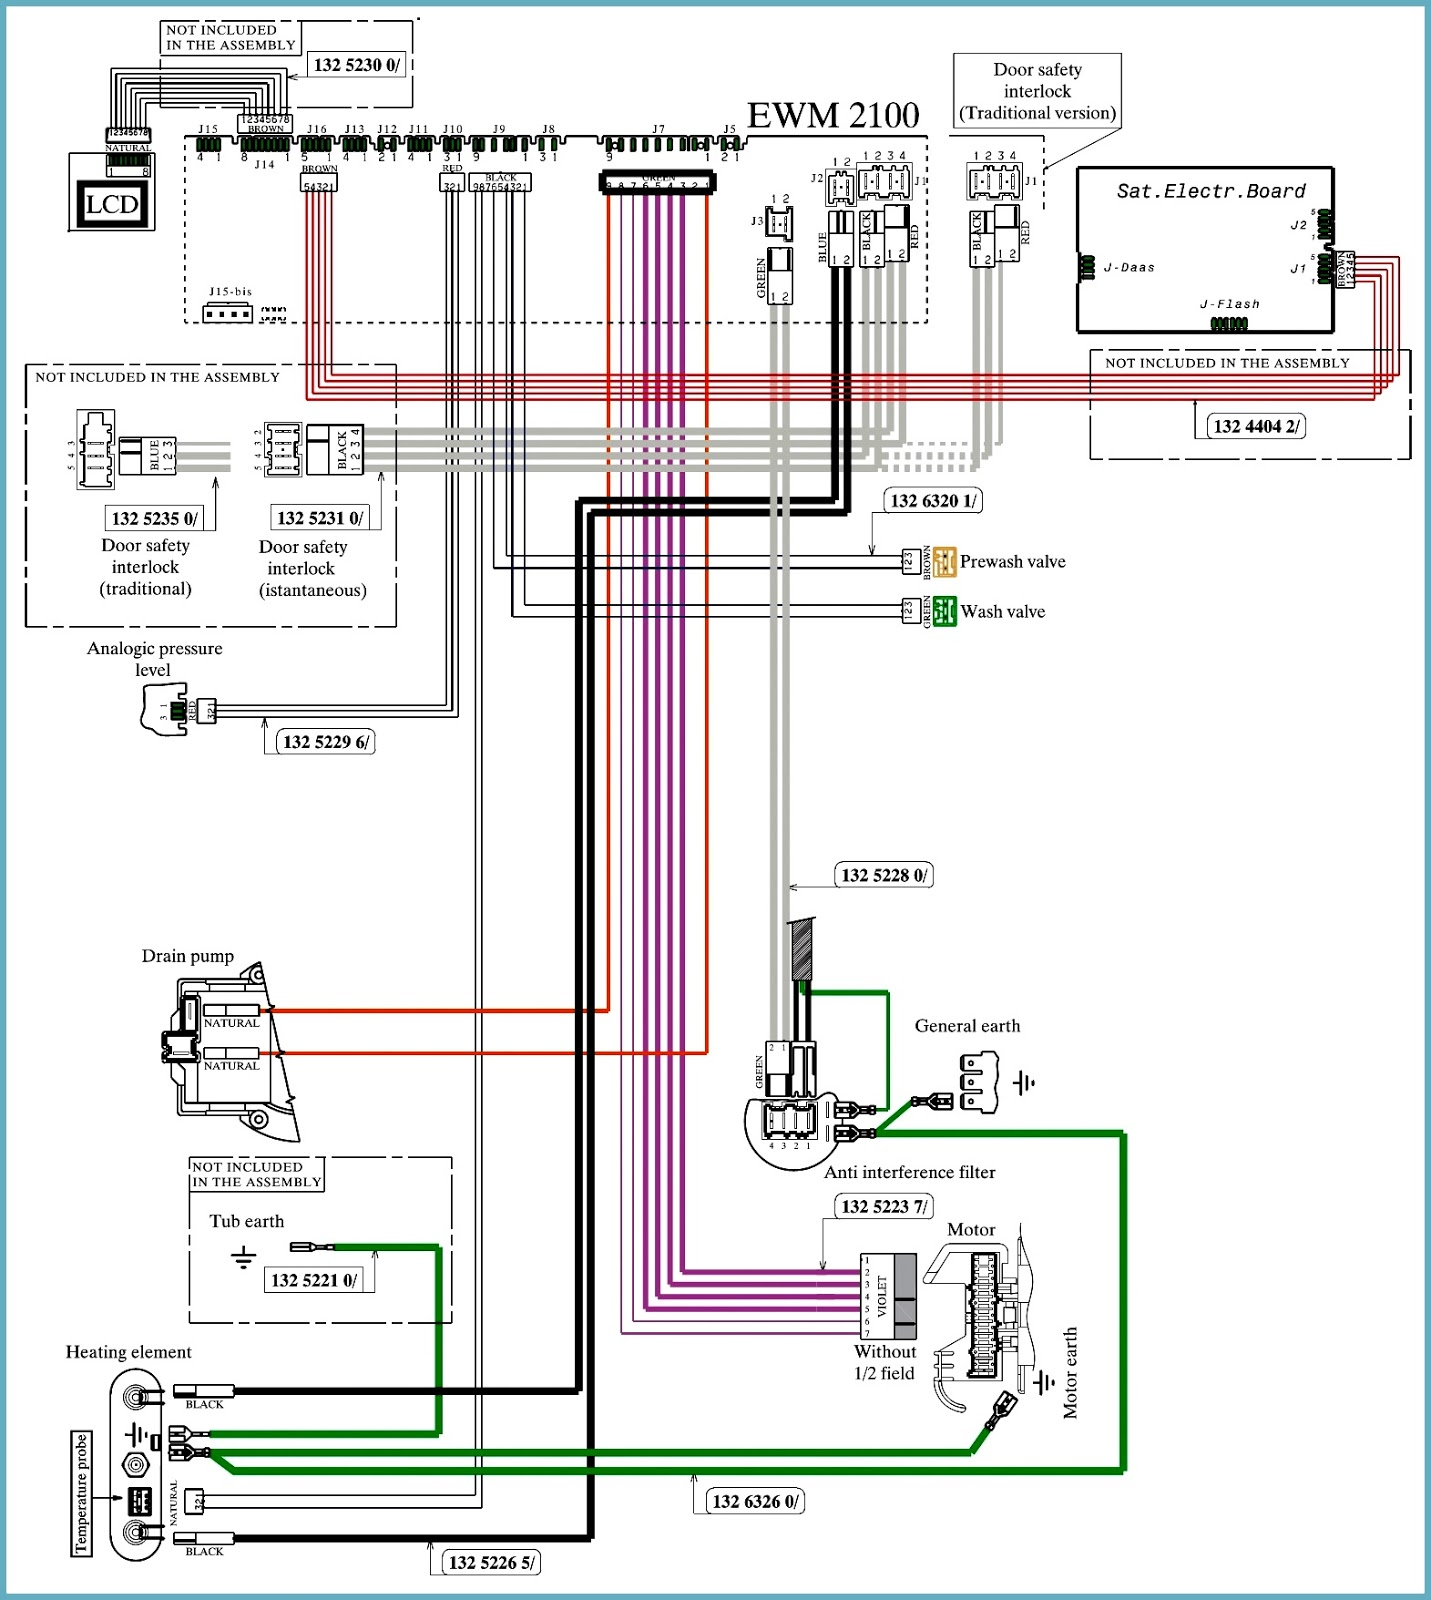 wiring%2Bdiagram electrolux wiring diagram electrolux dishwasher service manual Basic Electrical Wiring Diagrams at gsmx.co